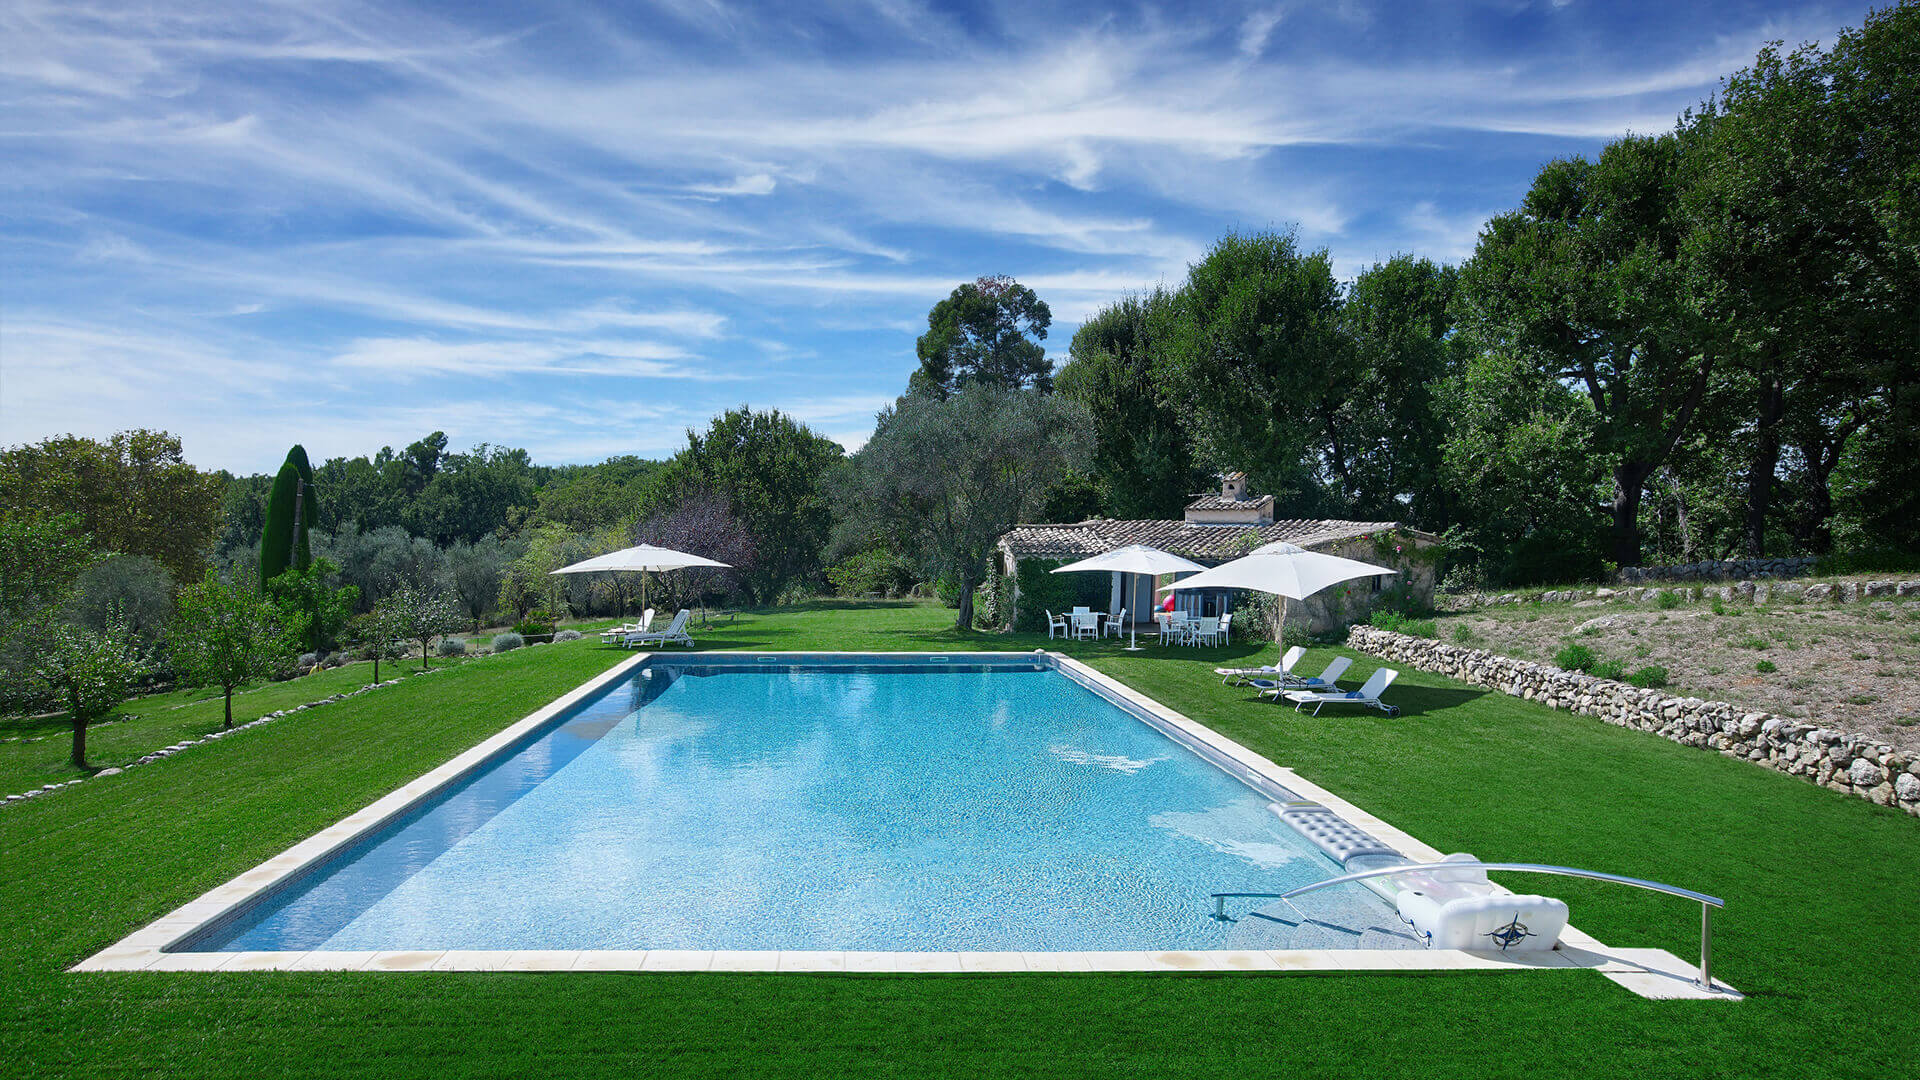 Large Domain Valbonne with lawn and swimming pool